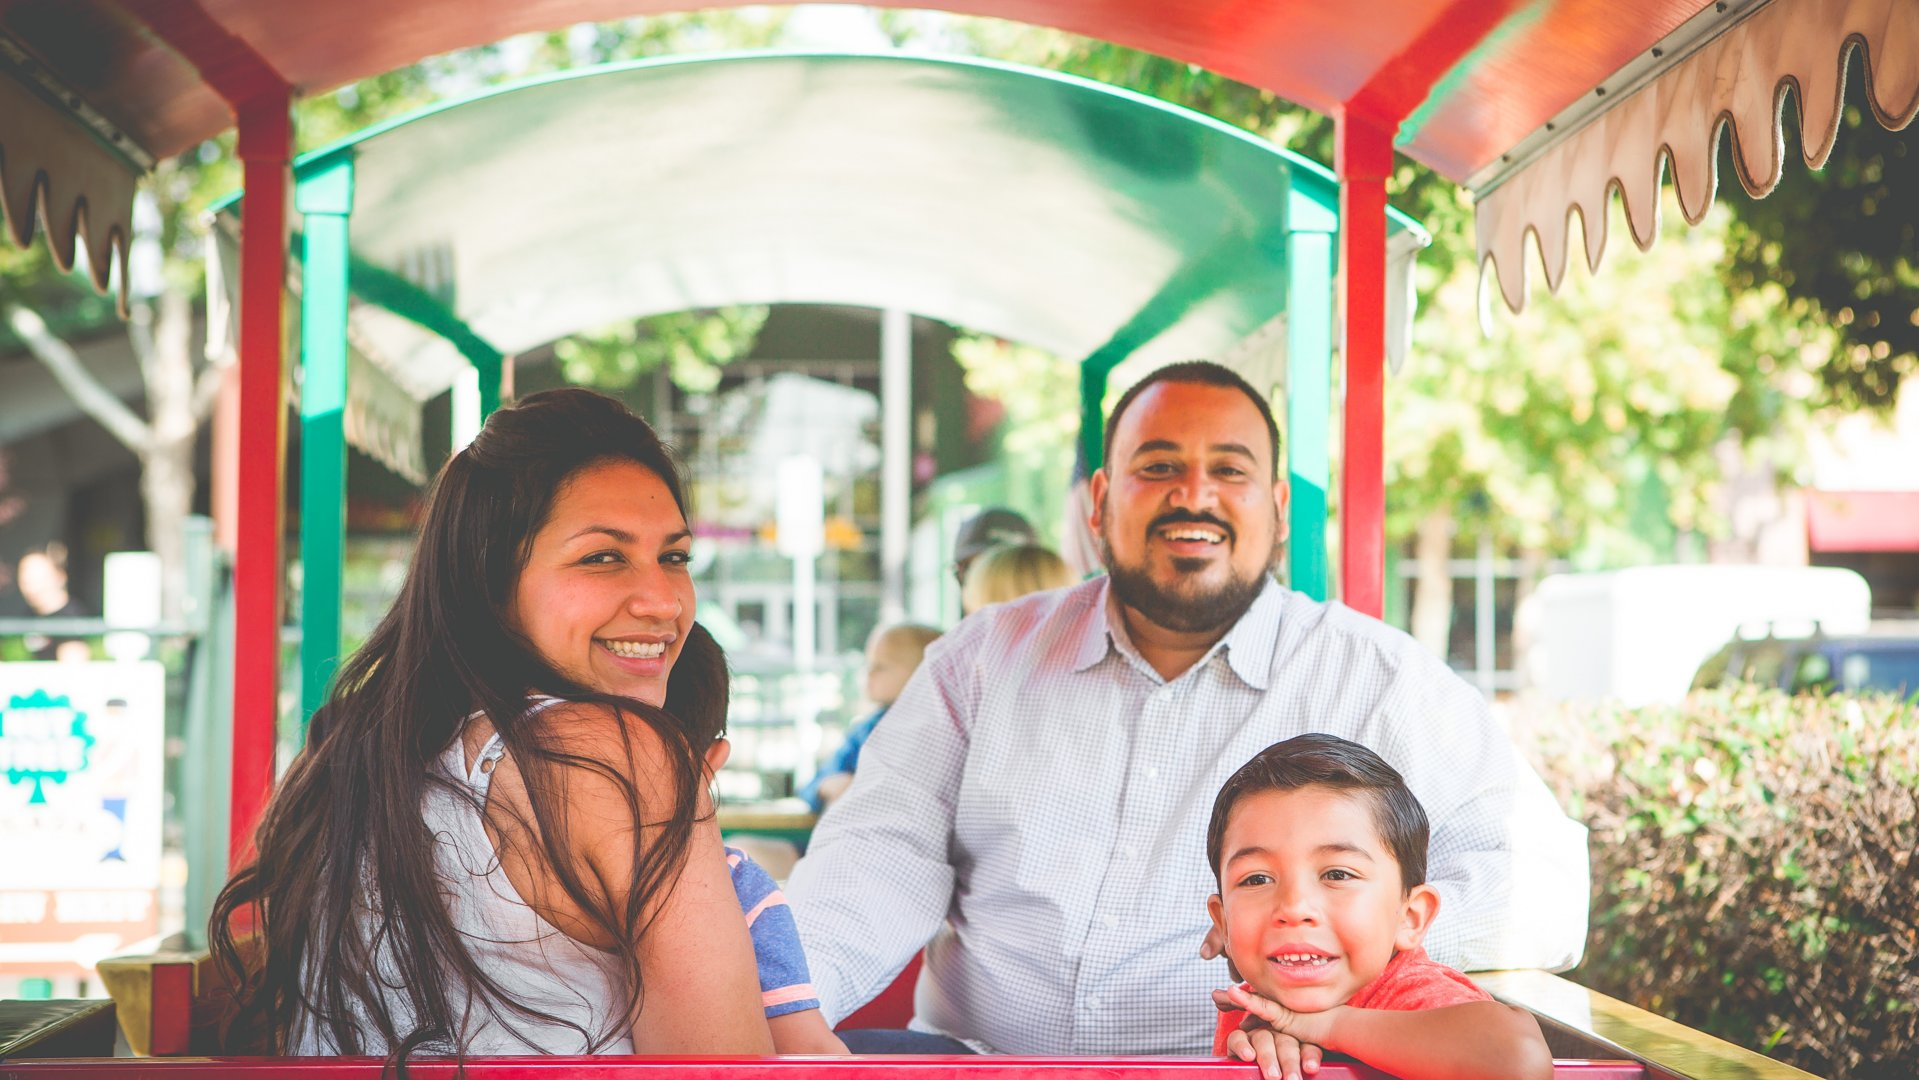 When it comes to kid-friendly family vacations, Vacaville is the spot to be.